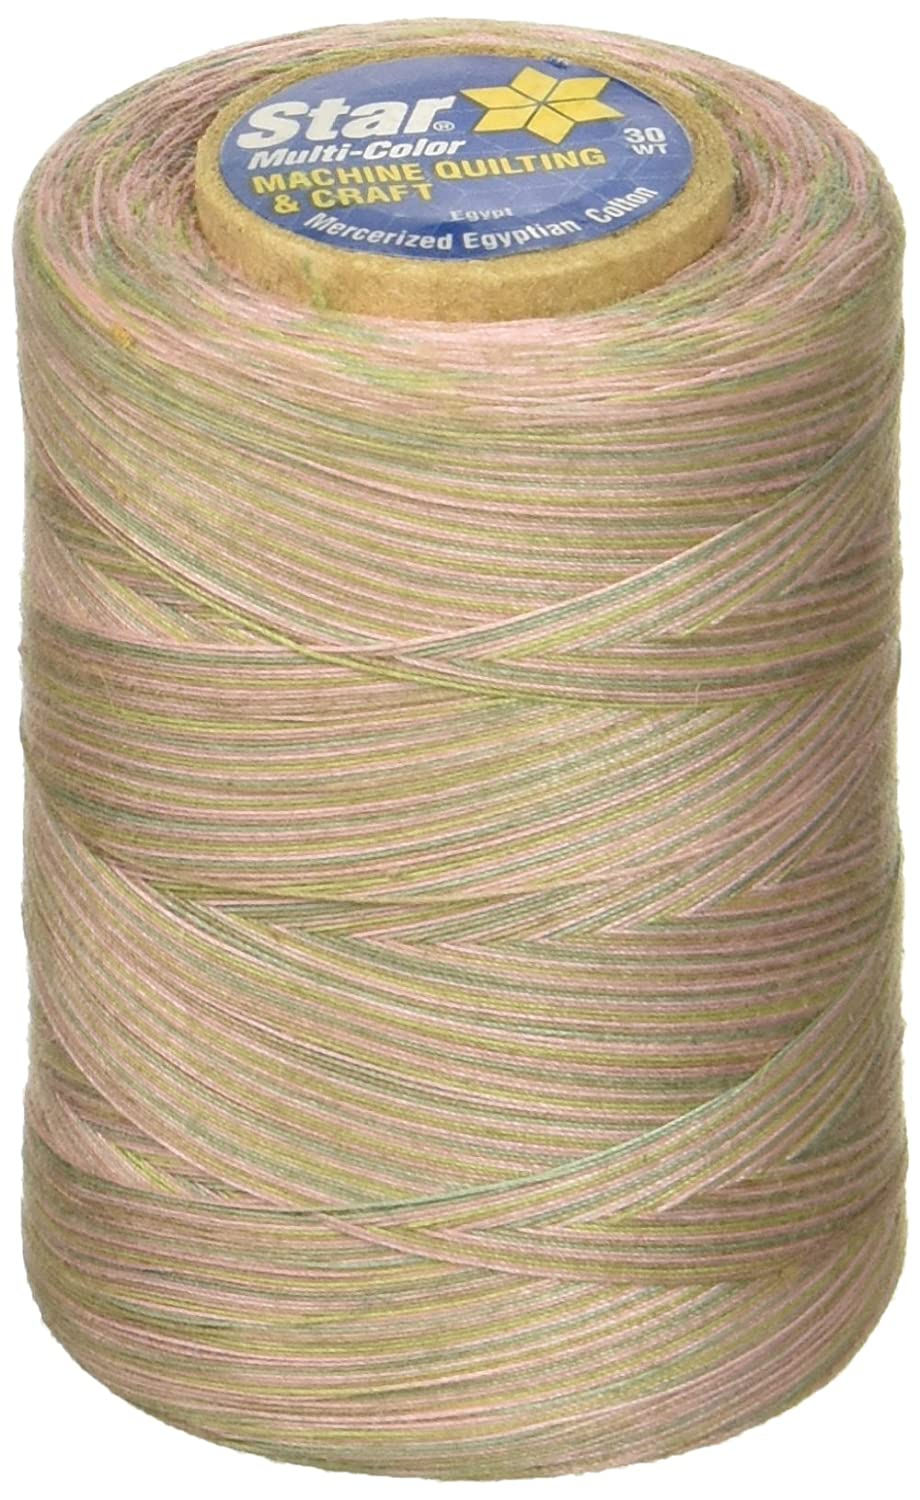 Baby Pastels YLI Corporation Coats Thread and Zippers Star Mercerized Cotton Thread Variegated